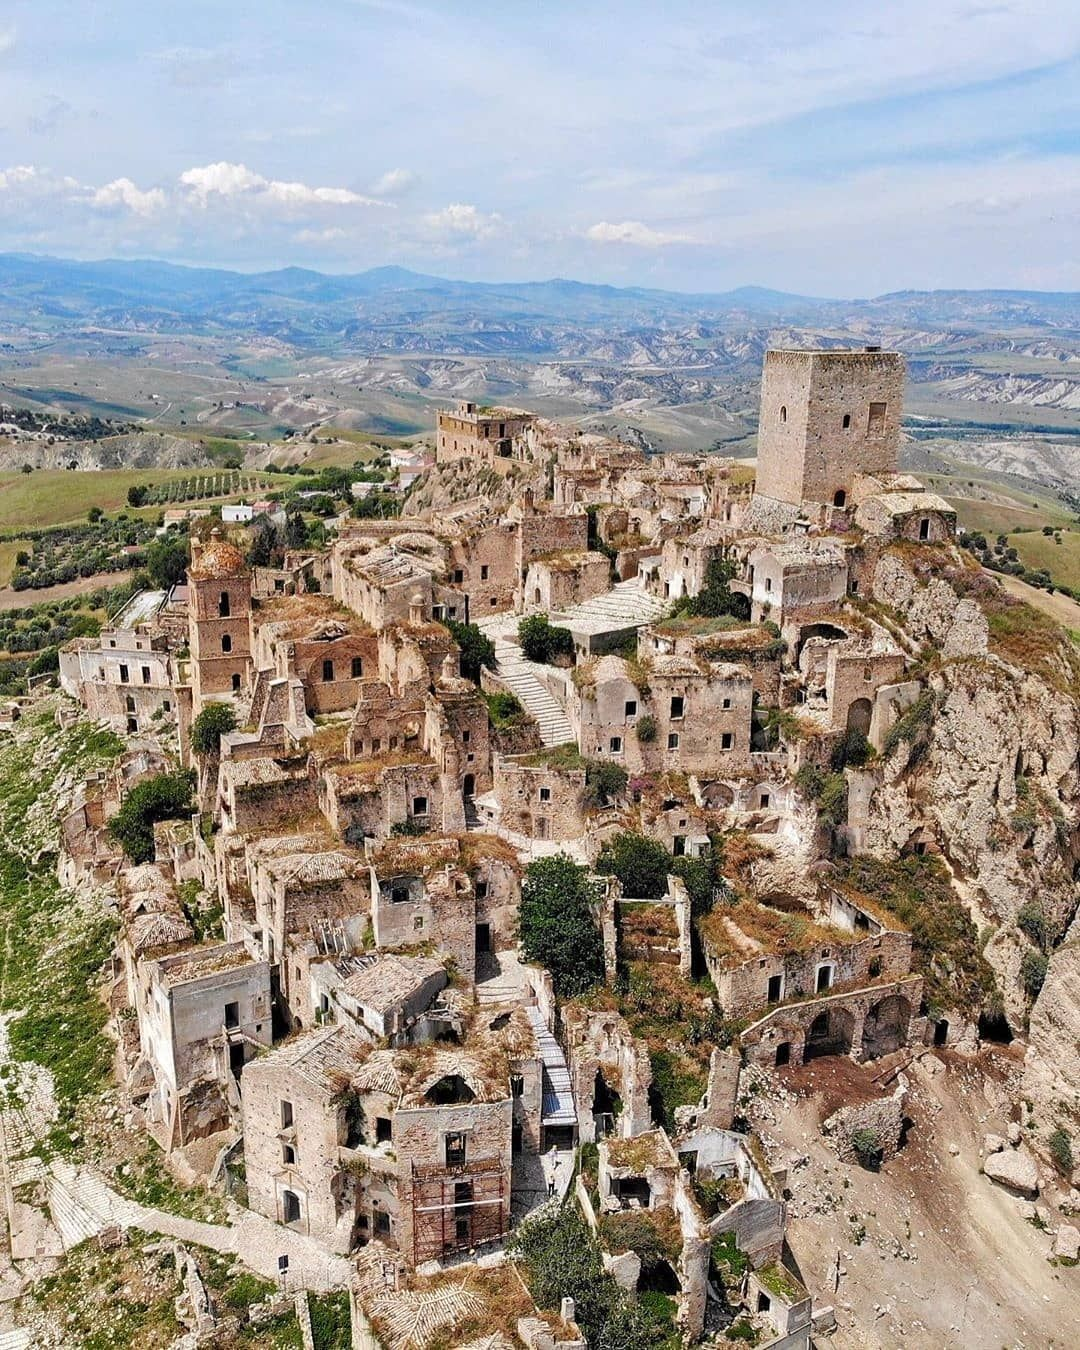 Map Of Italy On Instagram Craco 1 2 Italy Congrats Giannigiusto Use Map Of Europe Map Of Italy Abandoned Places Italy Map Abandoned Hotels